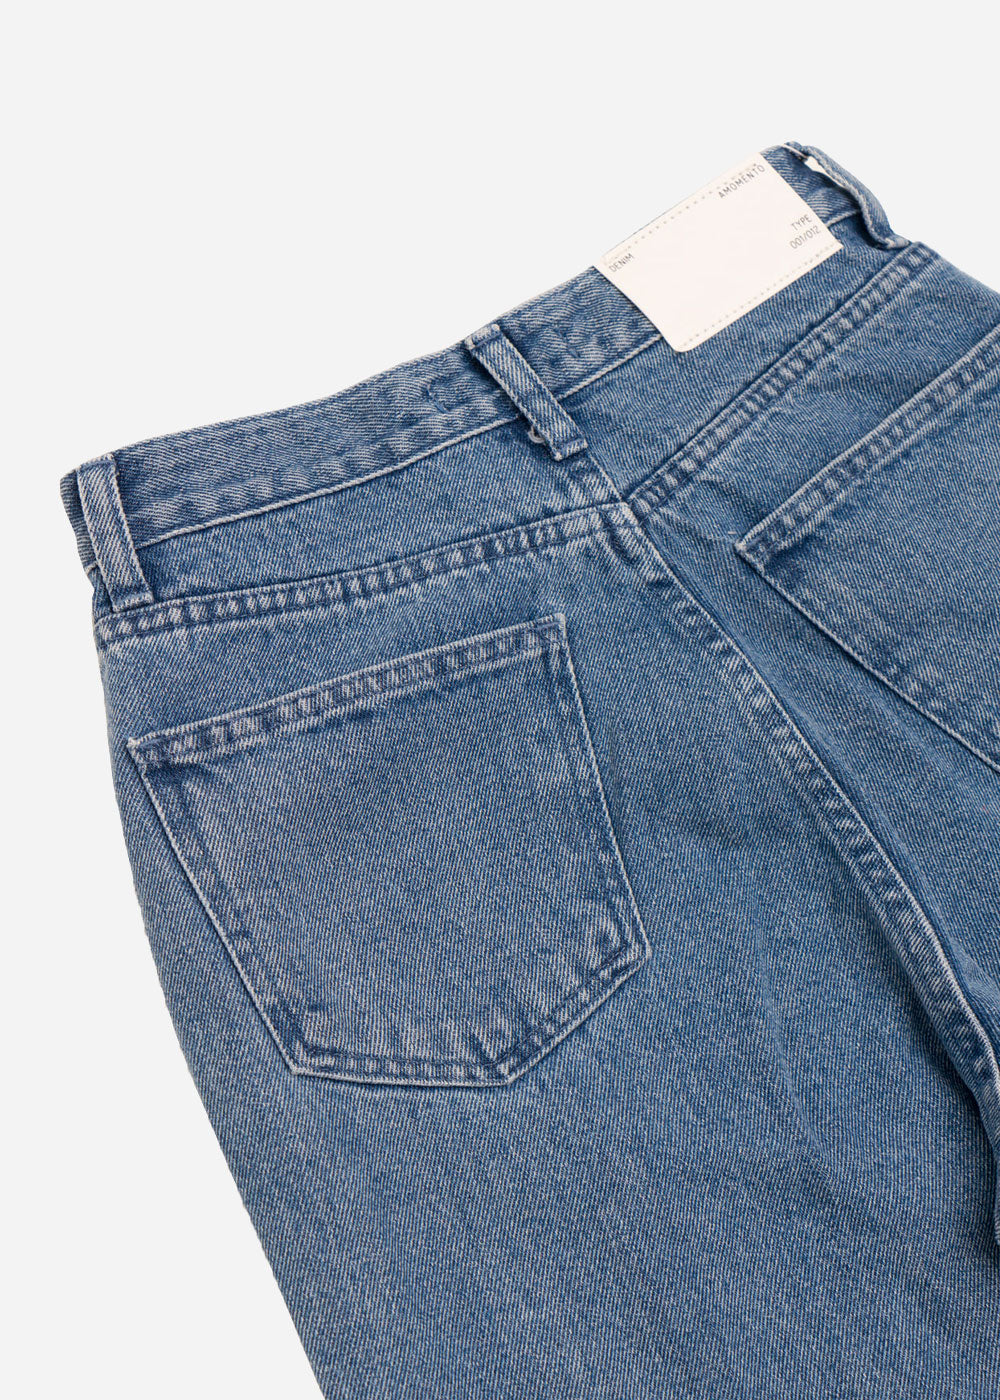 AMOMENTO Wide Fit Denim Jeans — New Classics Studios